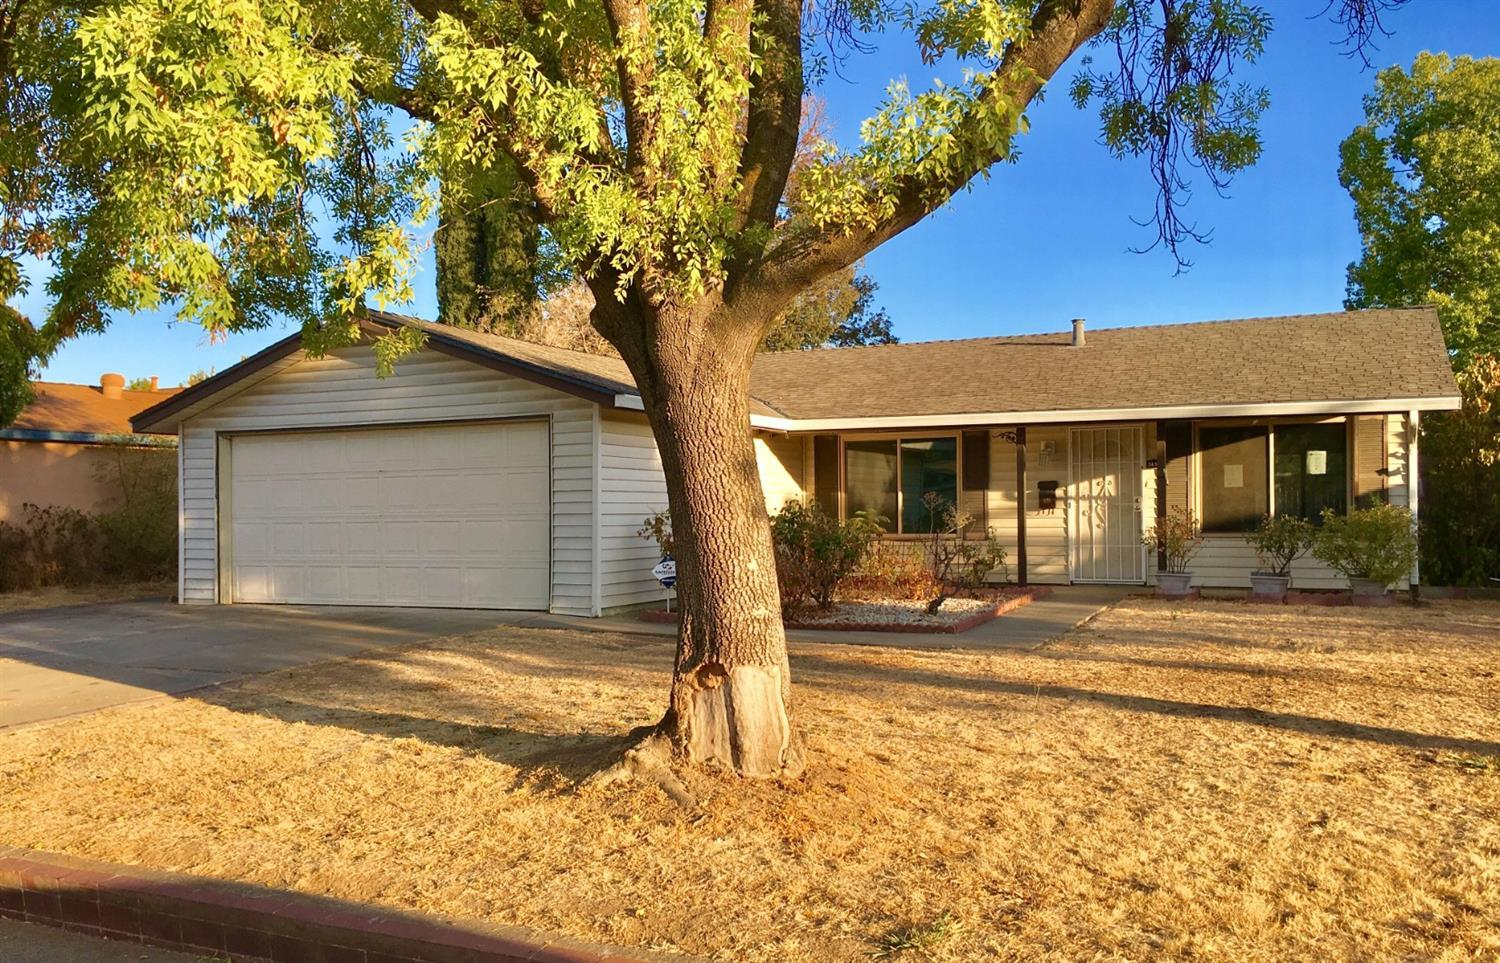 Local Real Estate: Homes for Sale — Parkway, CA — Coldwell Banker